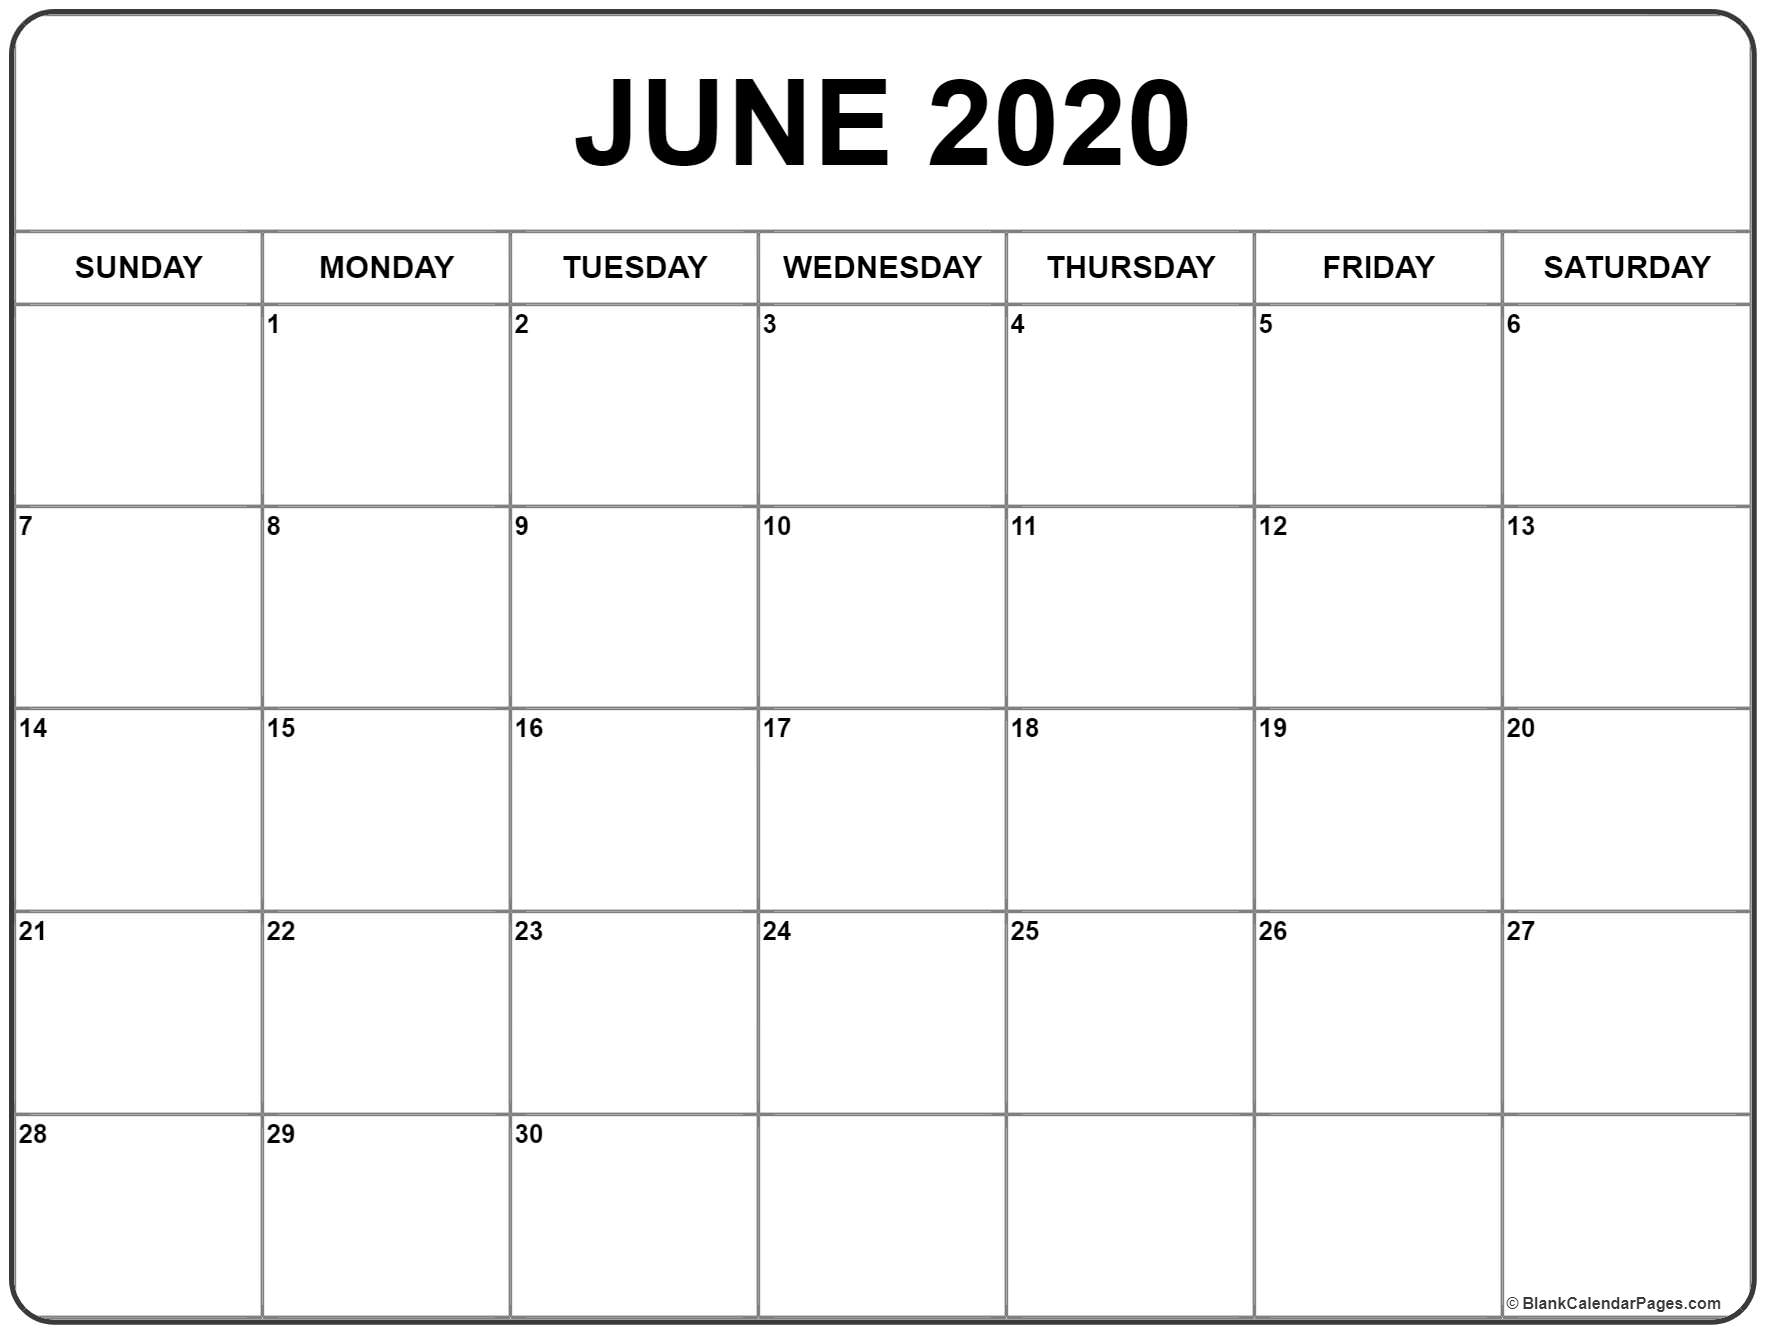 June 2020 Calendar | Free Printable Monthly Calendars intended for Calendar Maker July 2019-June 2020